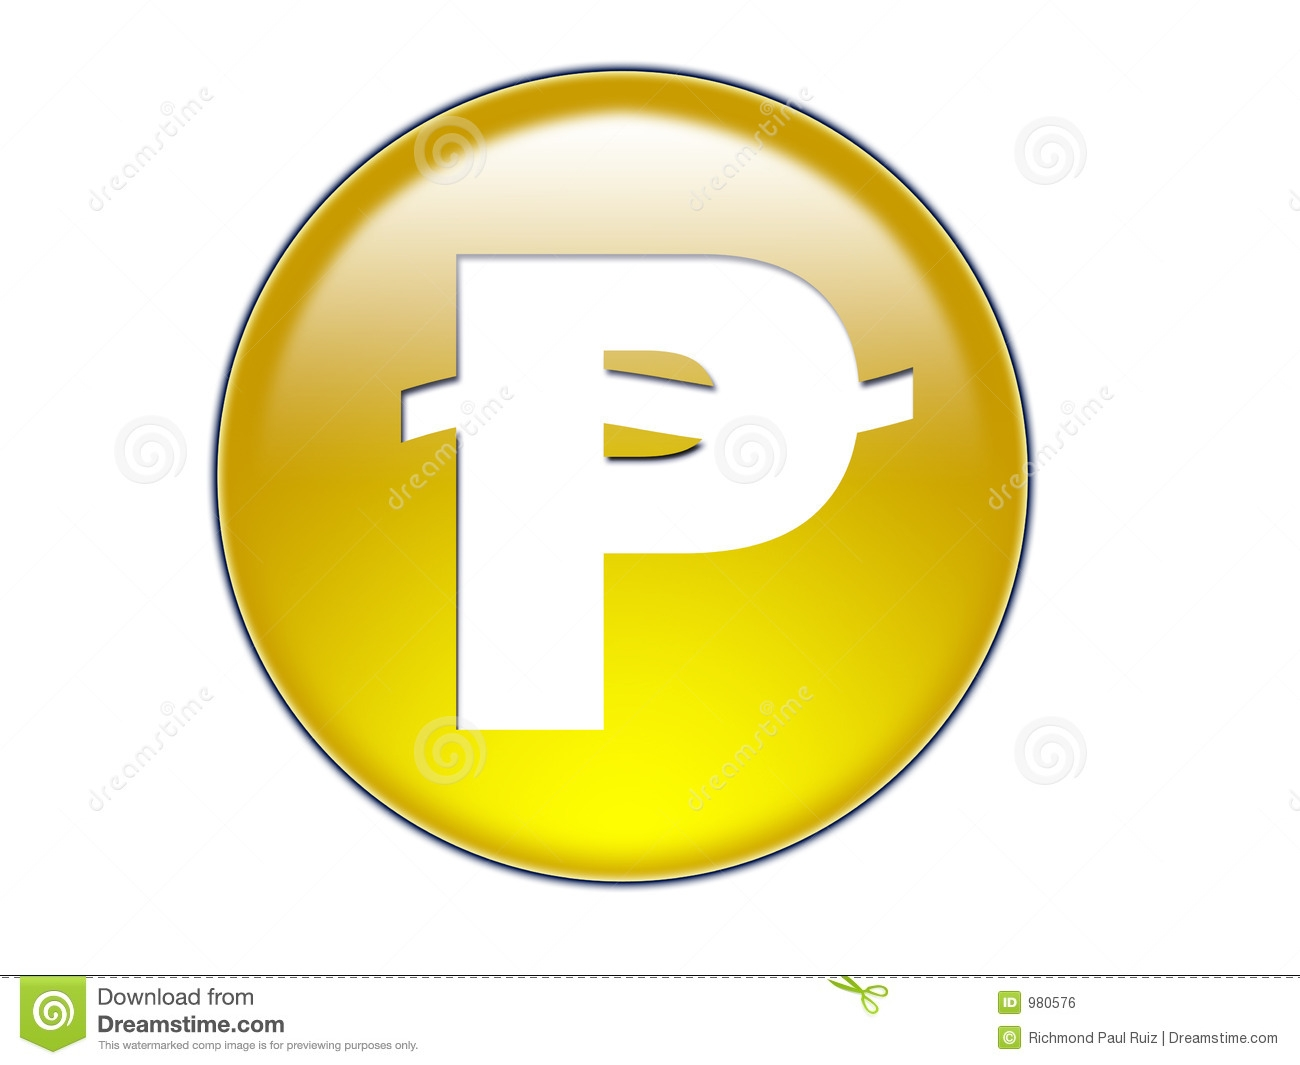 Coin clipart money peso Clipart Gold White Coin And